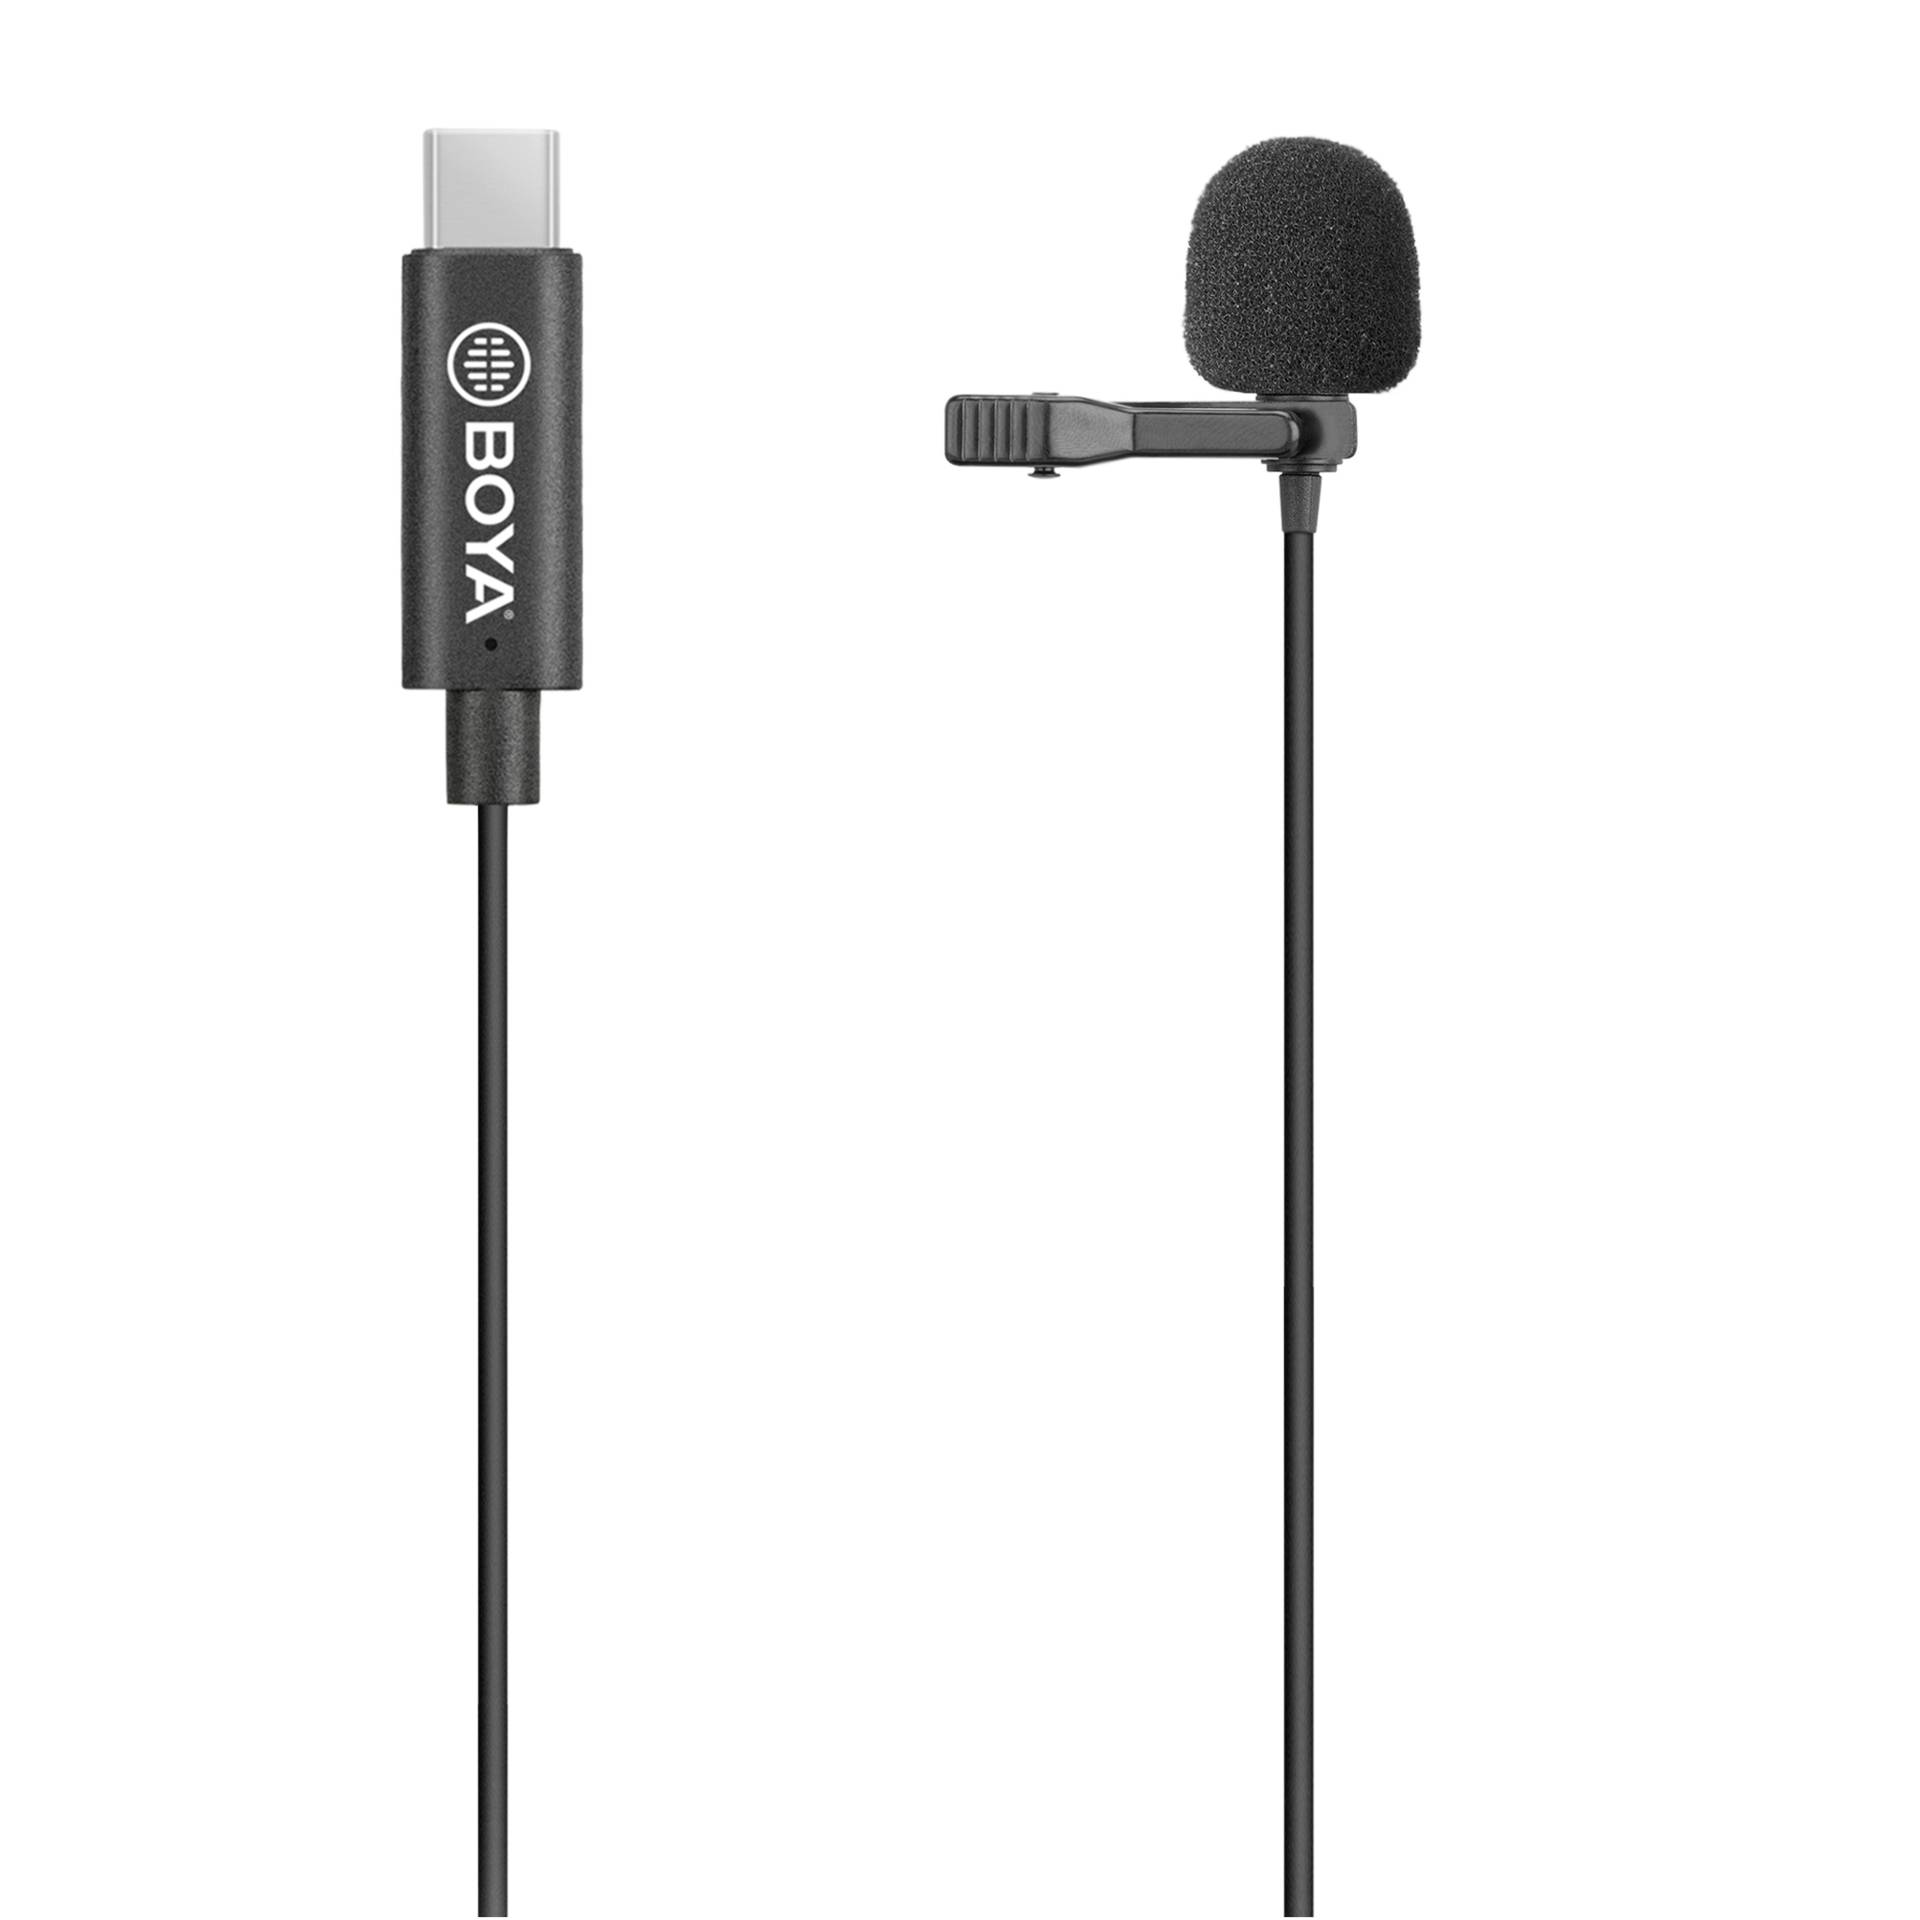 Walimex Pro Boya M3 clip on microphone for type USB-C